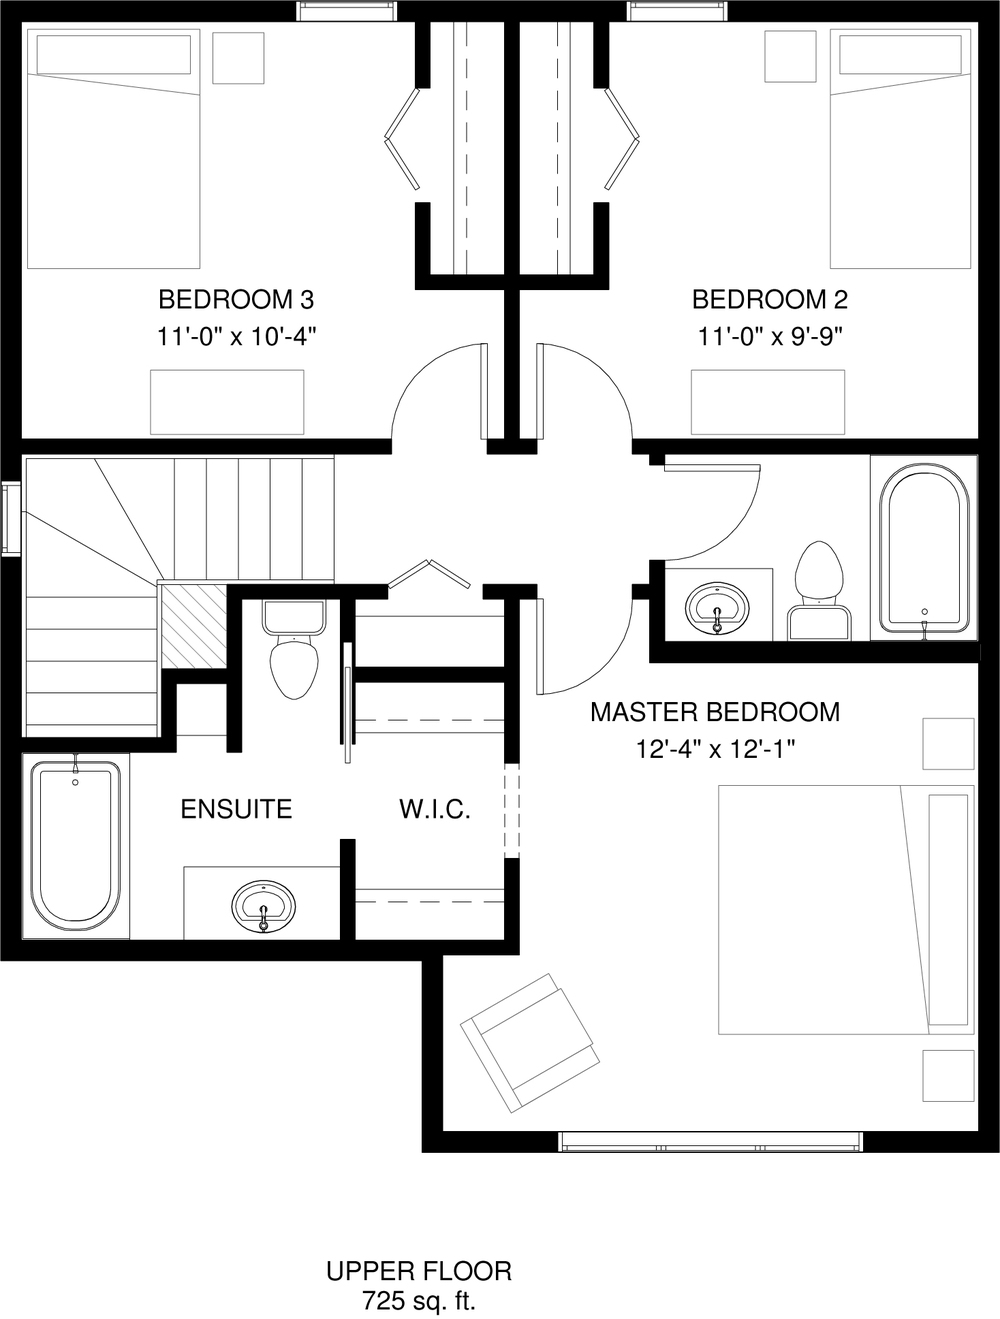 Upper Floor 725 sq ft